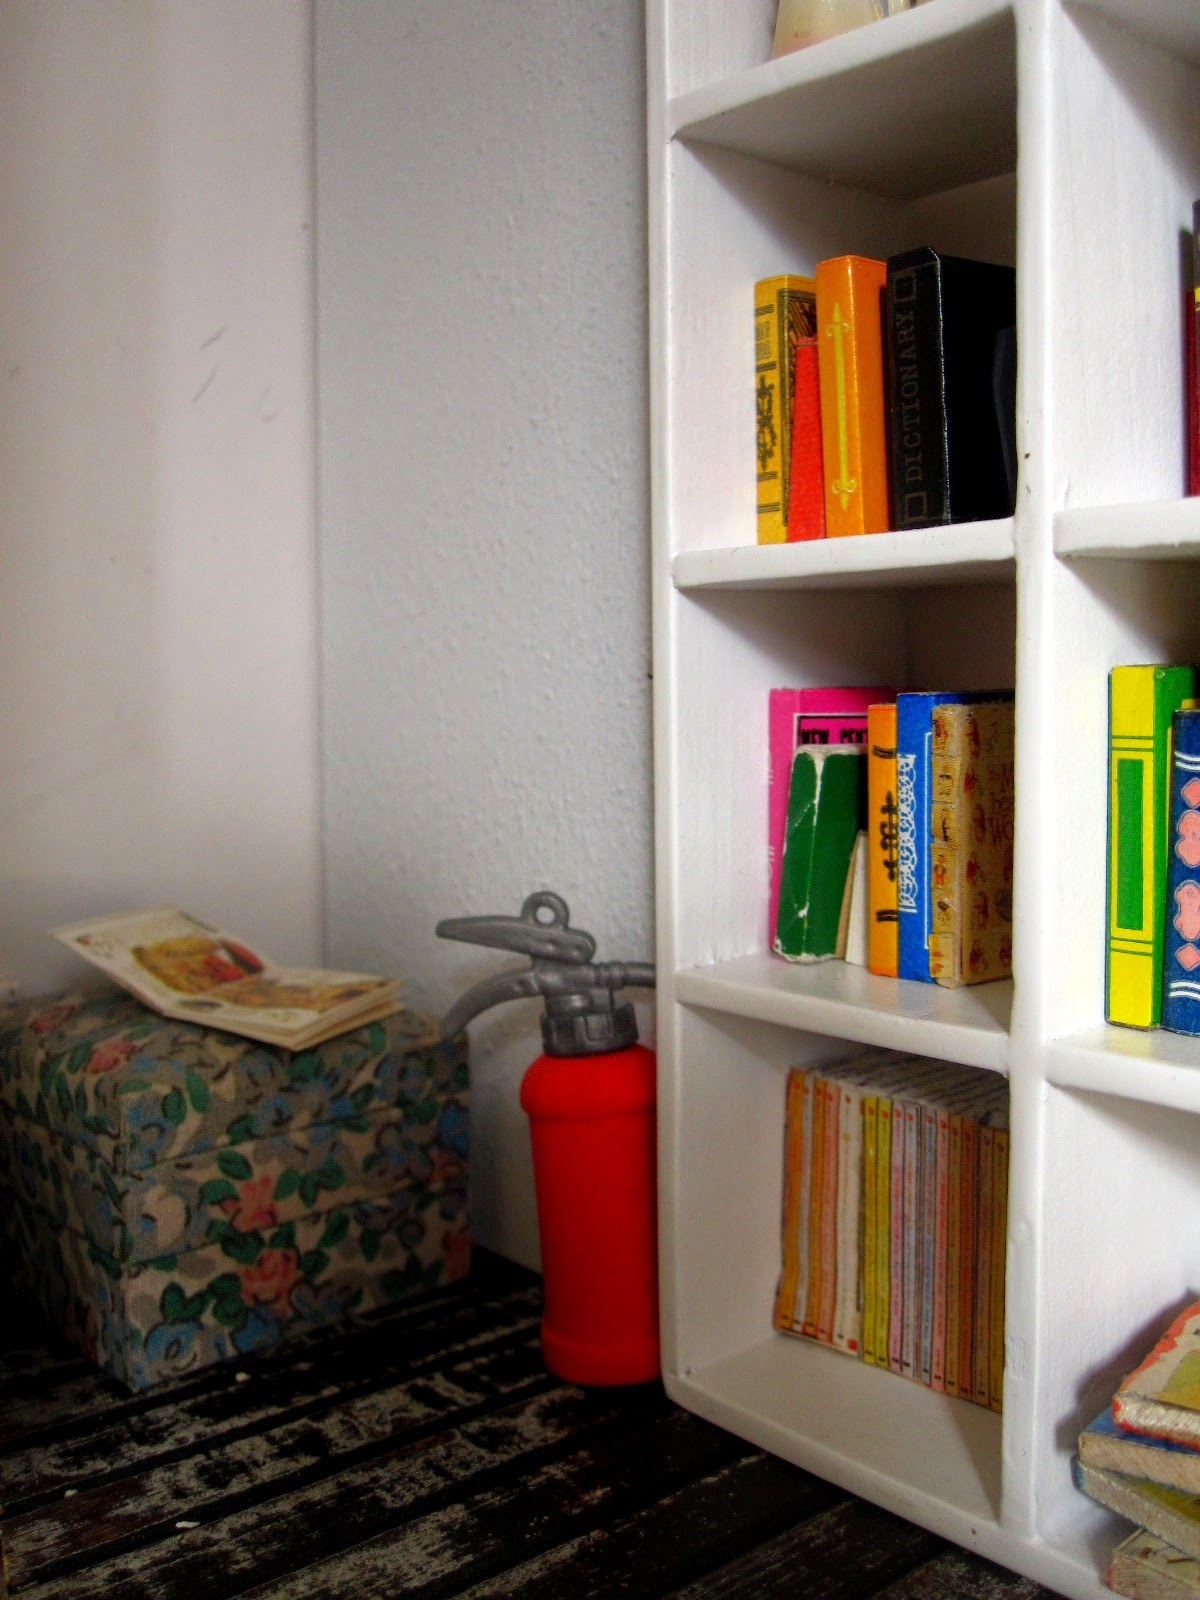 Corner of a modern dolls' house miniature pop-up Little Library, with a pouffe, fire extinguisher and shelves of books.